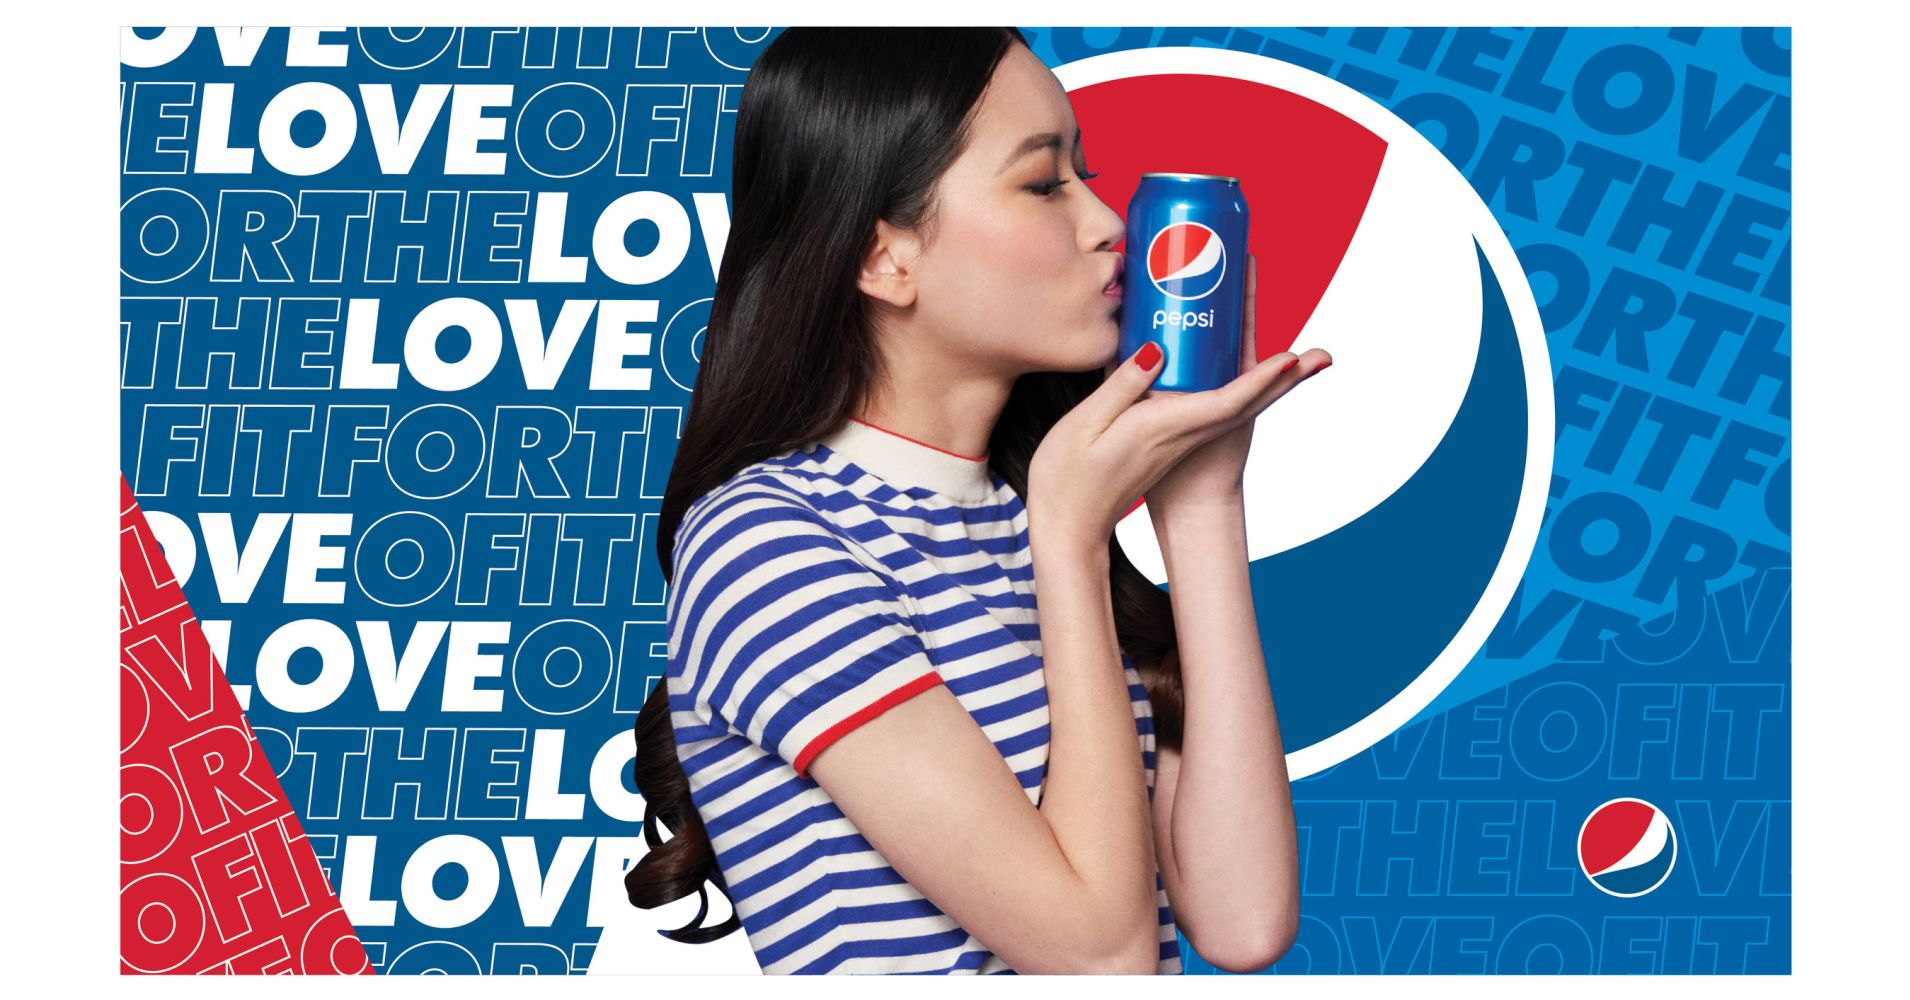 Pepsi Has A New Ad Slogan. And It's Already Dividing Opinion photo